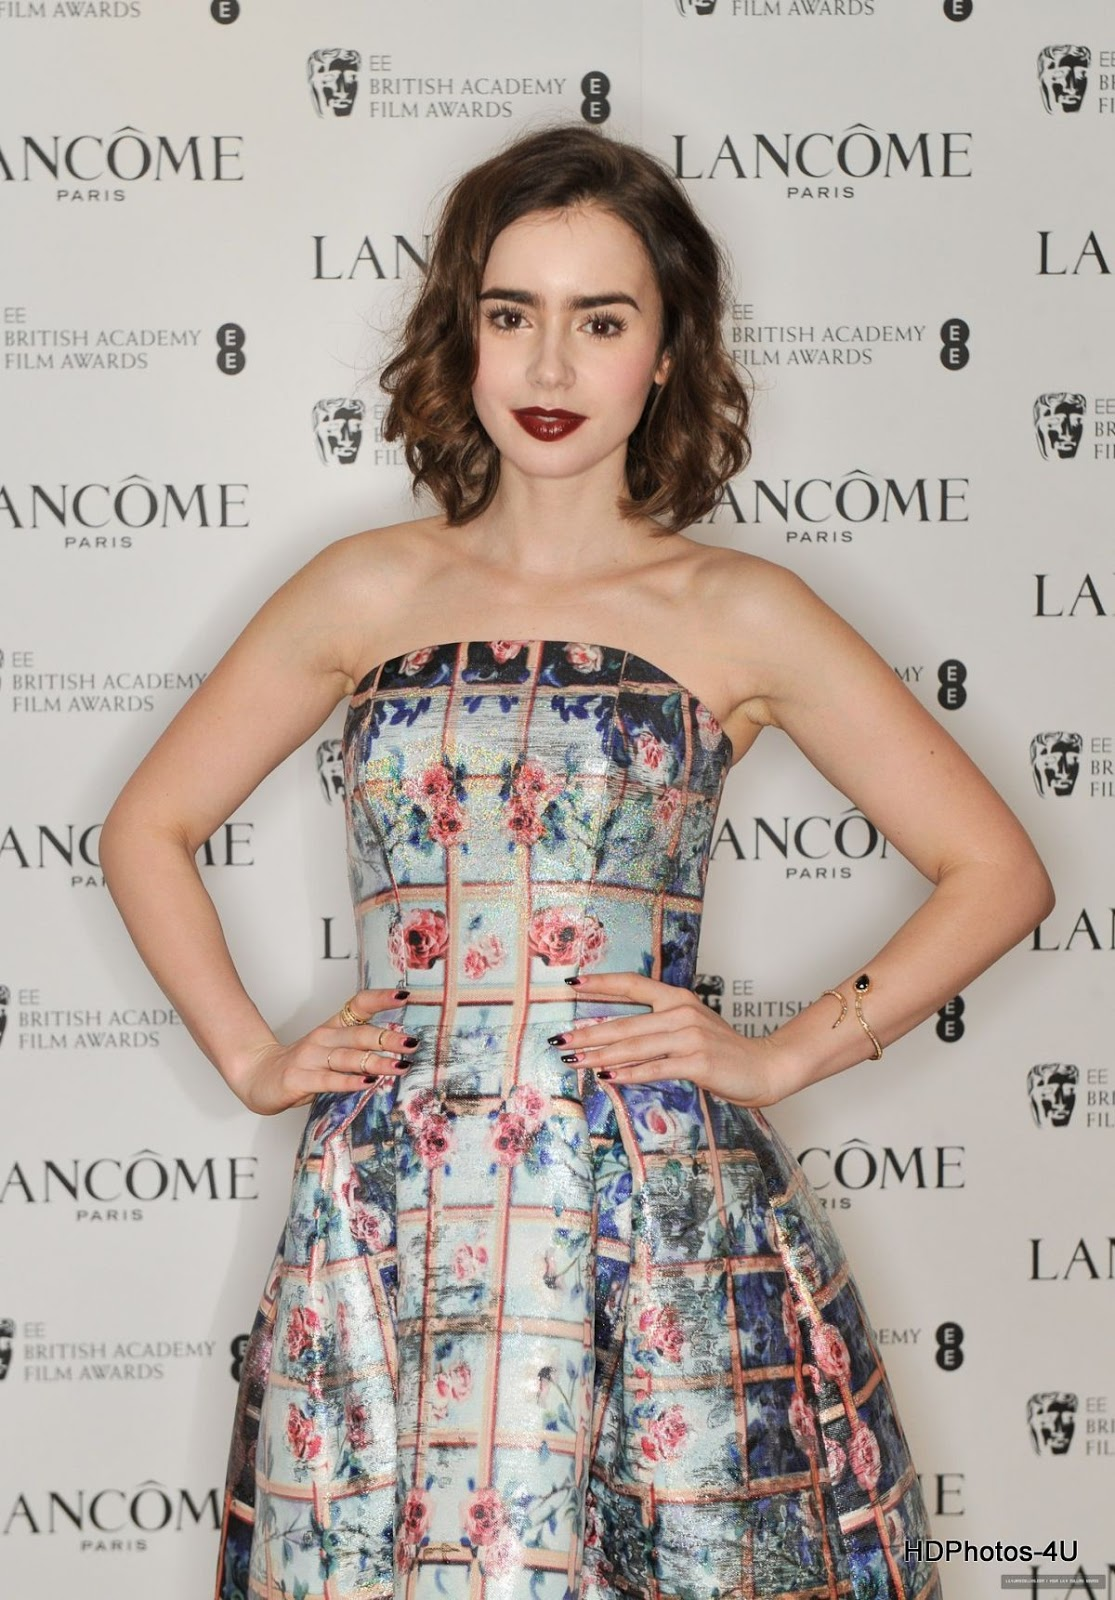 'Okja' actress HQ Photos/Wallpapers of Lily Collins at Lancome Pre-Bafta Party in London